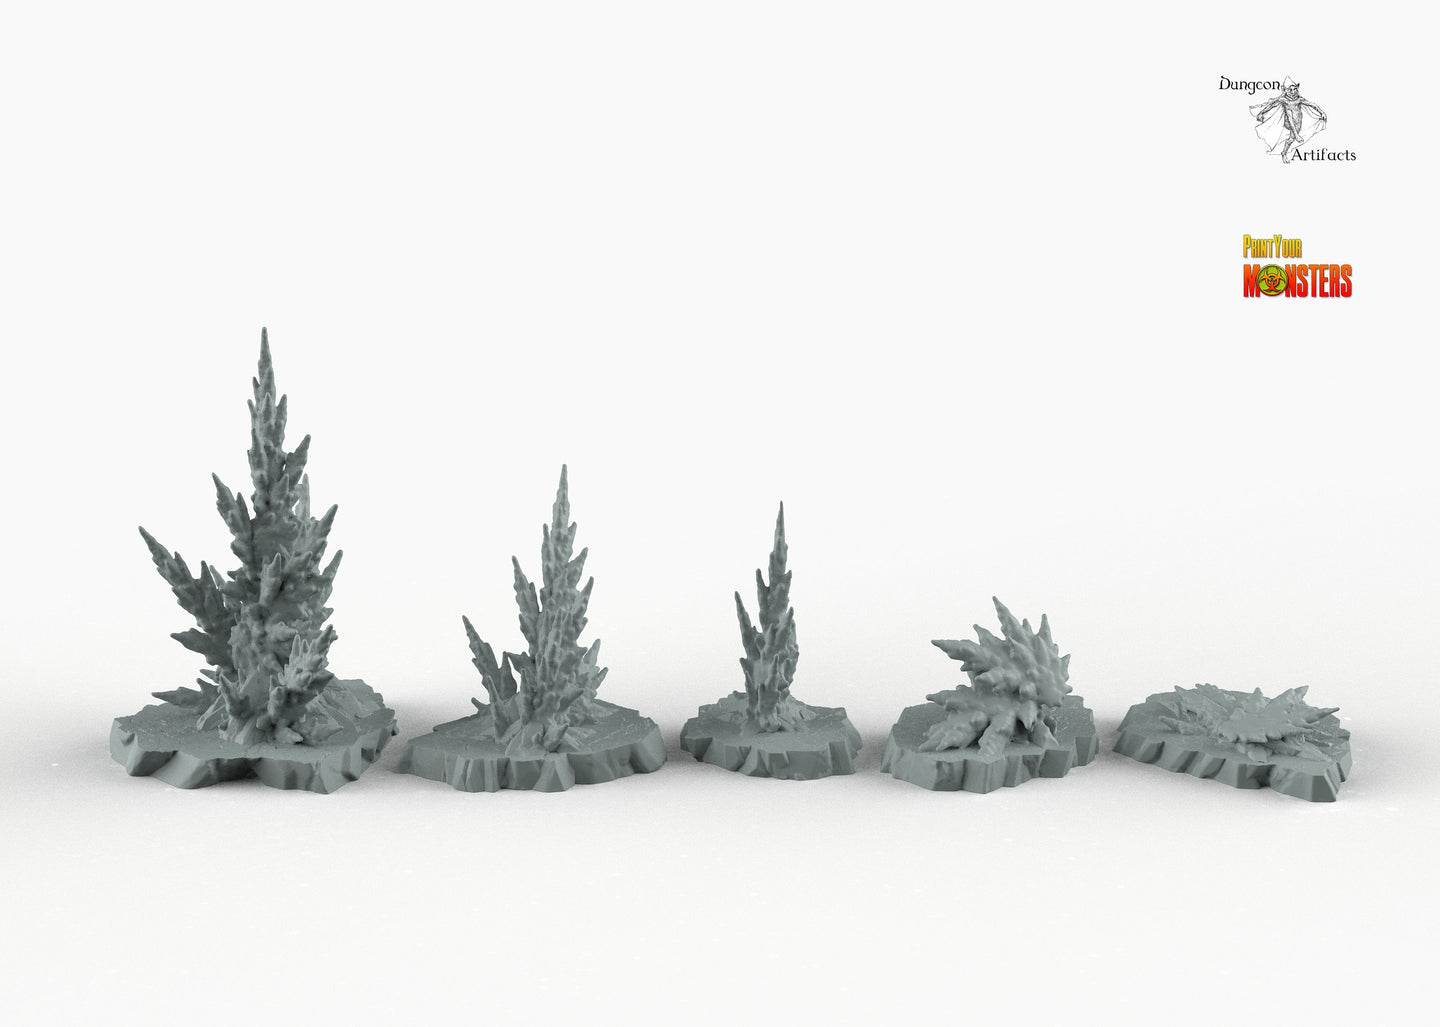 Ancient Desert Baryte - Print Your Monsters Fantastic Plants and Rocks Resin Terrain Wargaming D&D DnD Pathfinder Warhammer